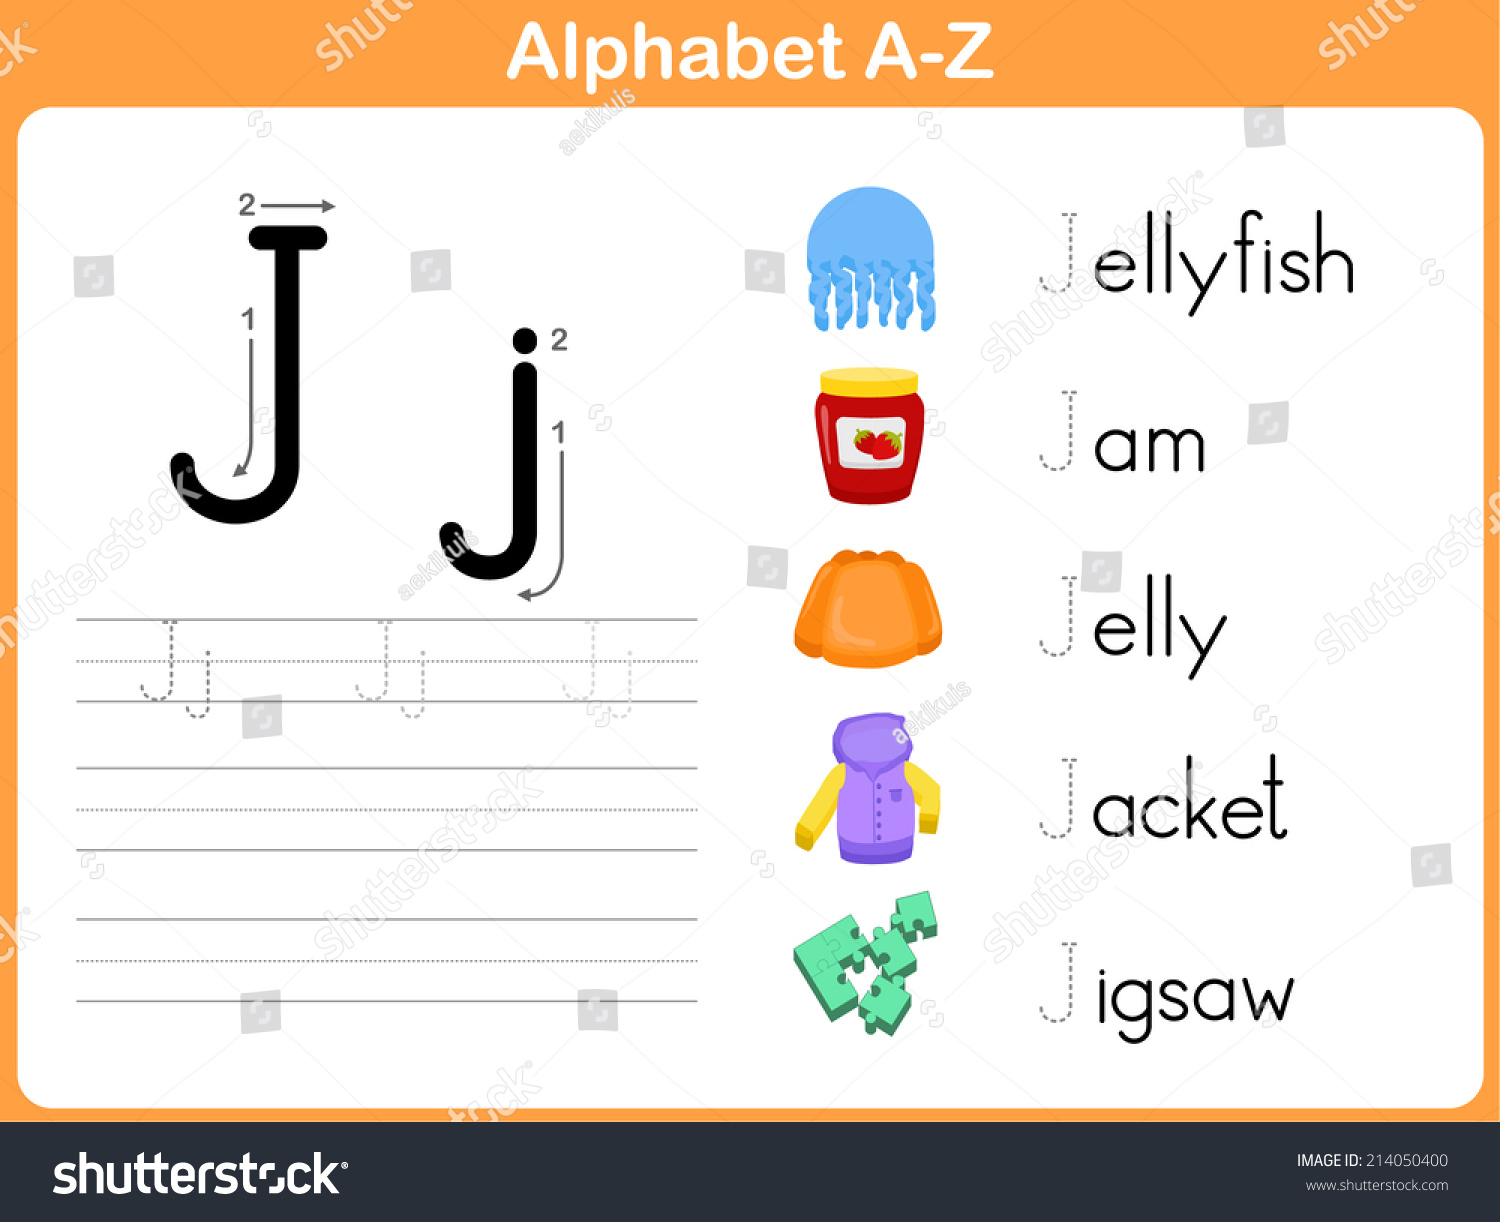 worksheet Child Support Worksheet Az alphabet tracing worksheets a z humorholics worksheet writing az stock vector 214050400